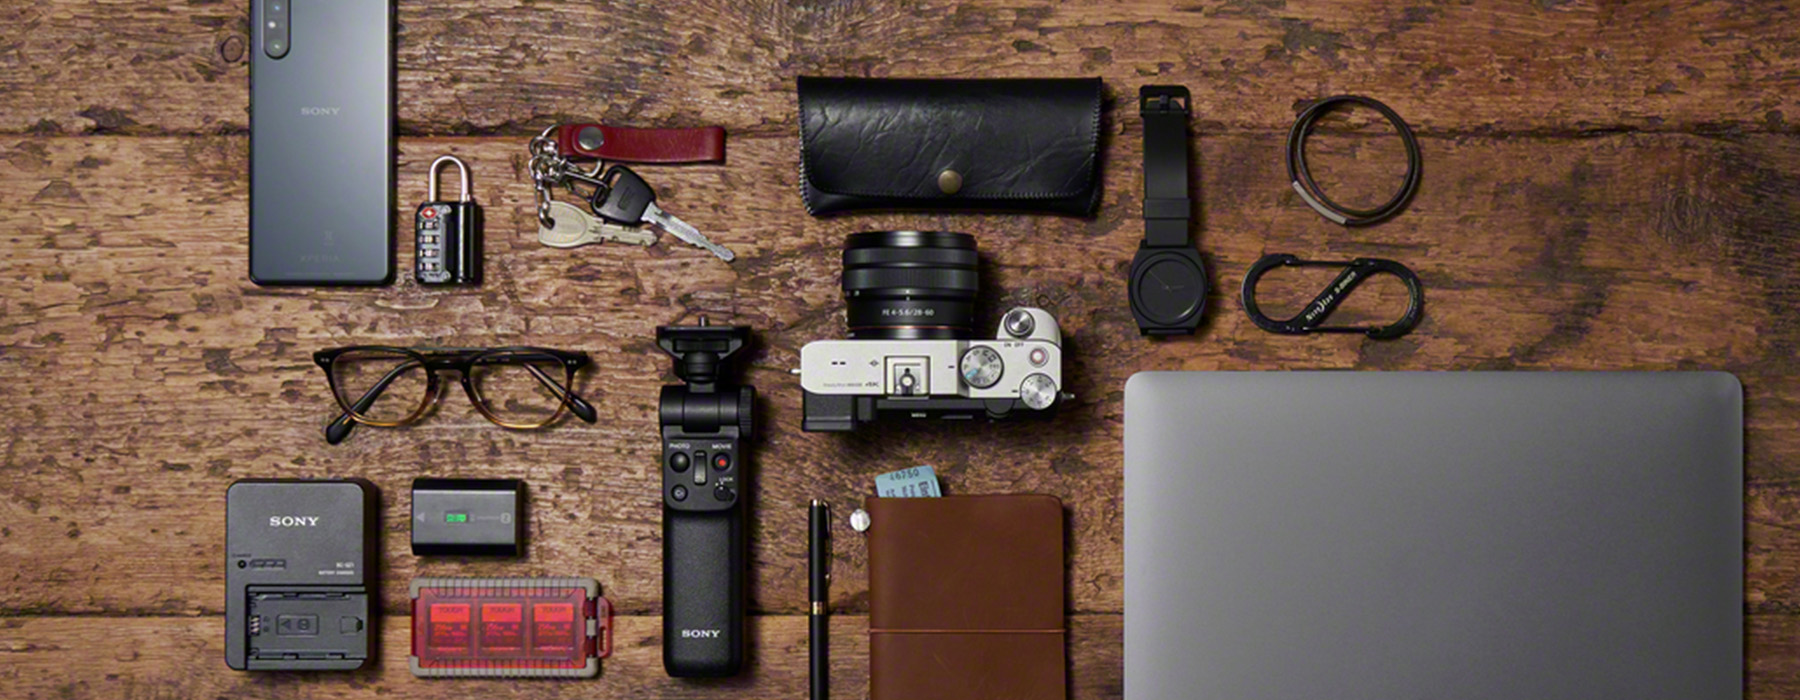 Sony Alpha Universe Middle East and Africa